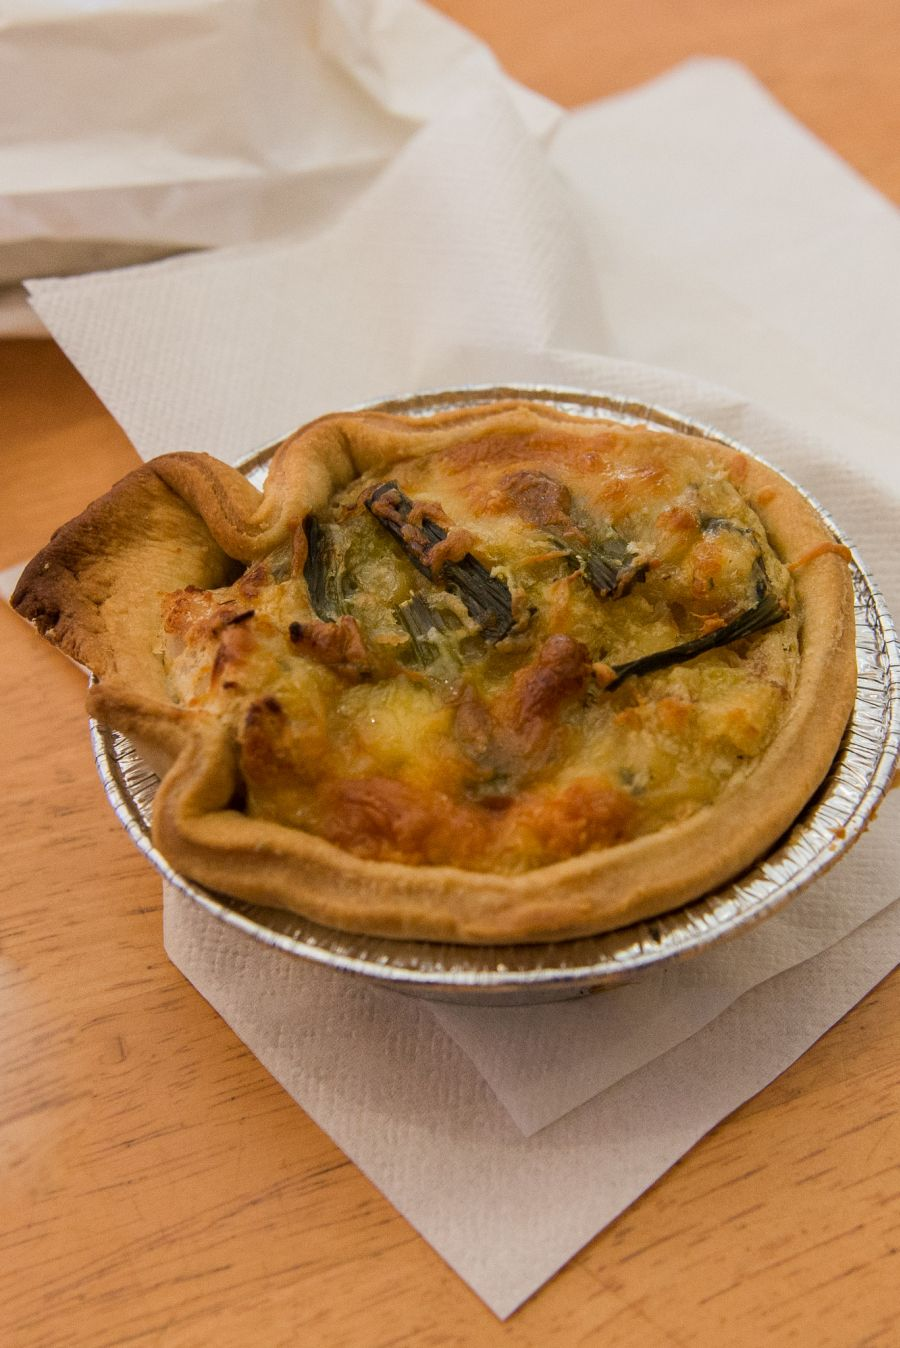 Chicken and asparagus pie